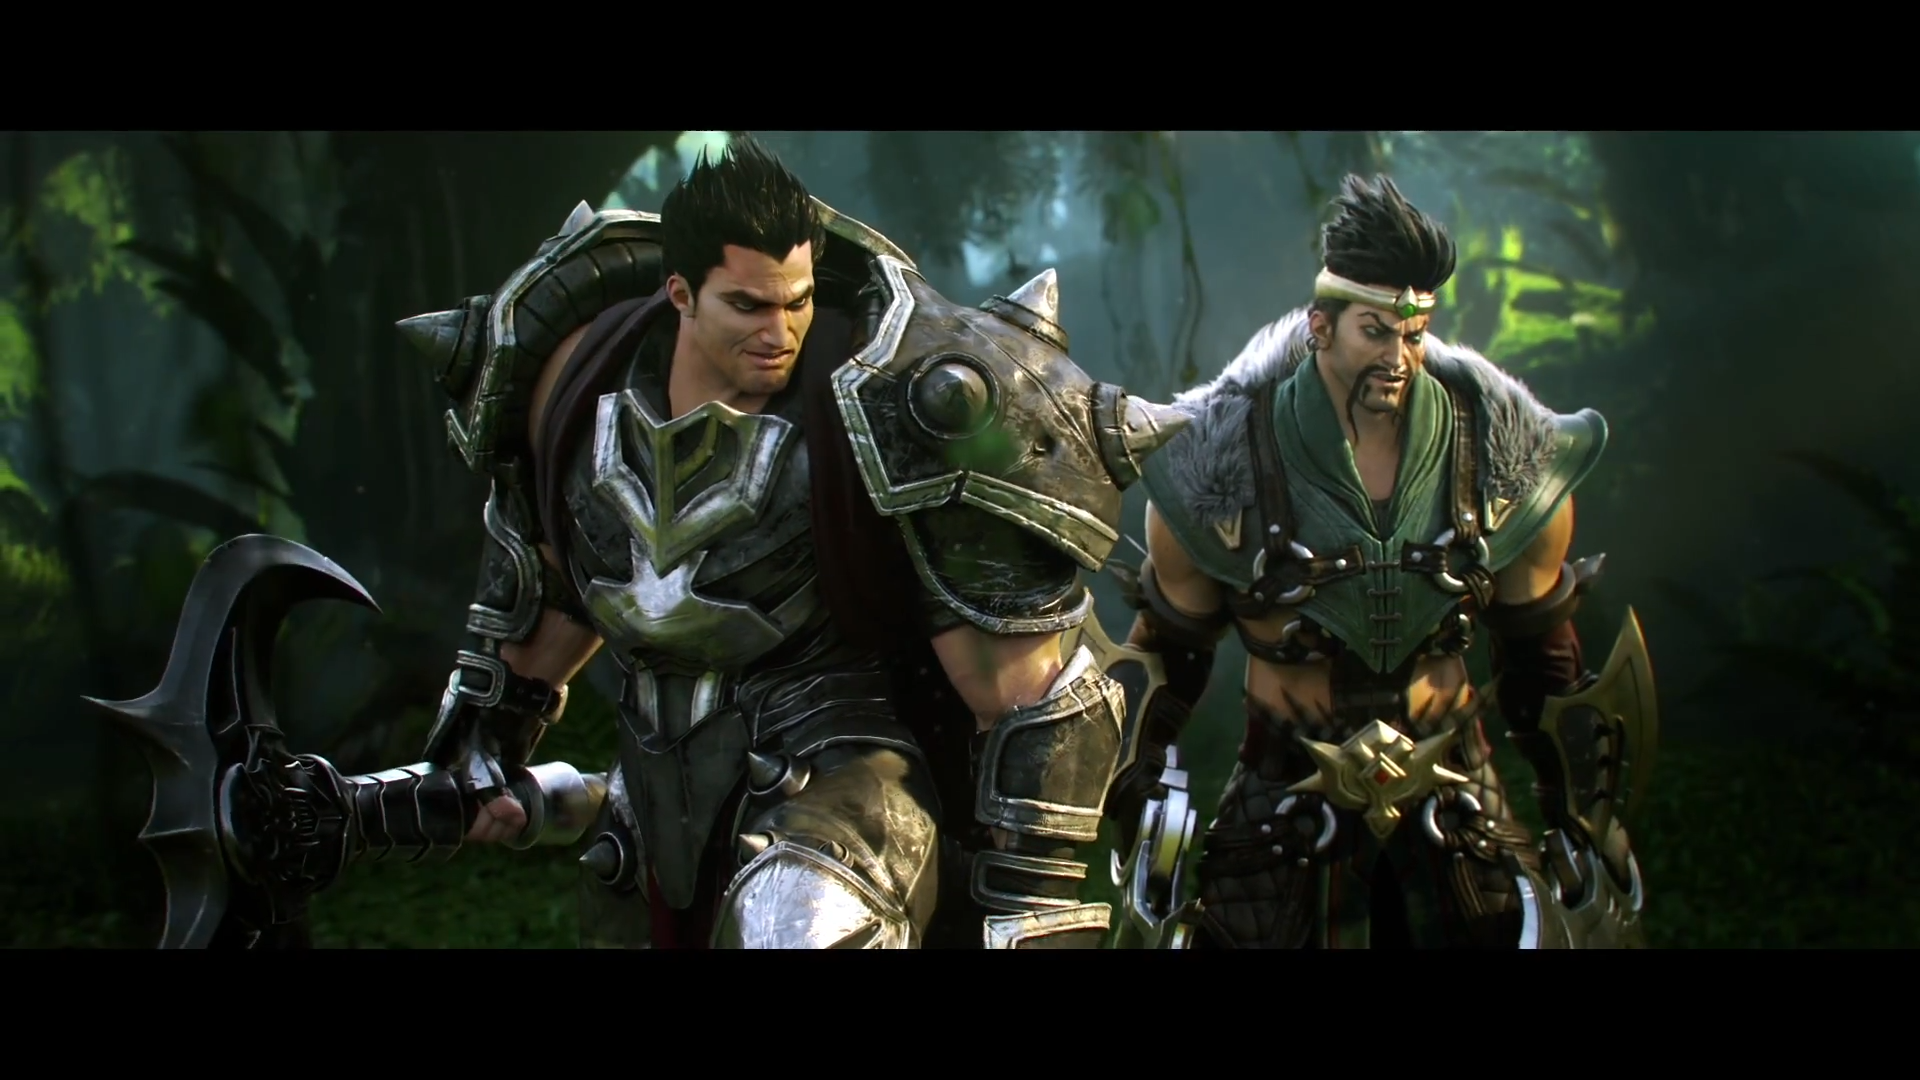 League Of Legends - Darius And Draven by Els236League Of Legends Wallpaper Darius Draven